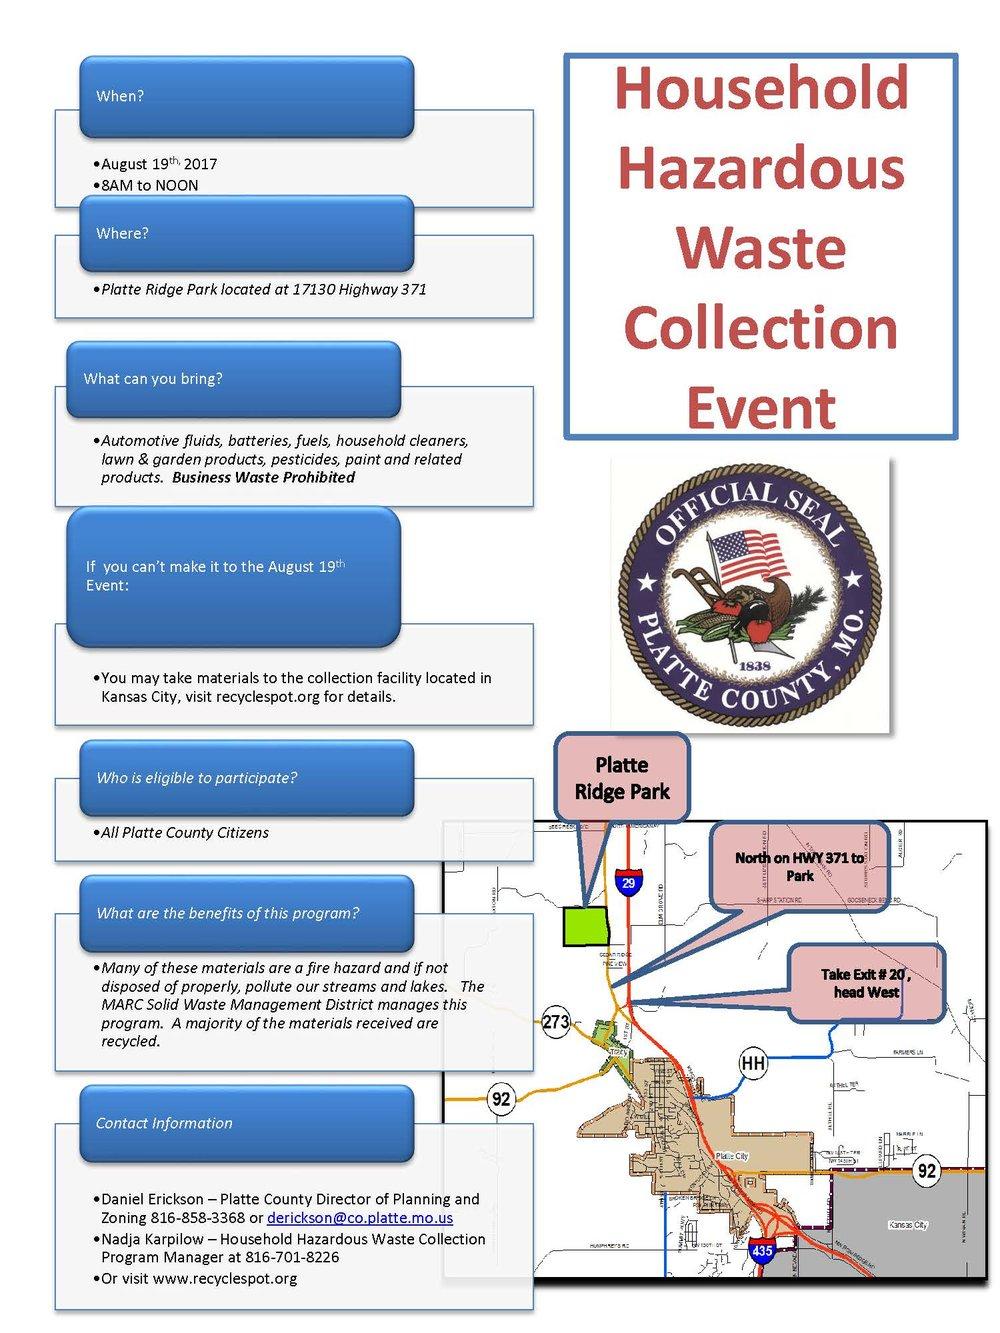 Household Hazardous Waste Collection Event2017 flier.jpg